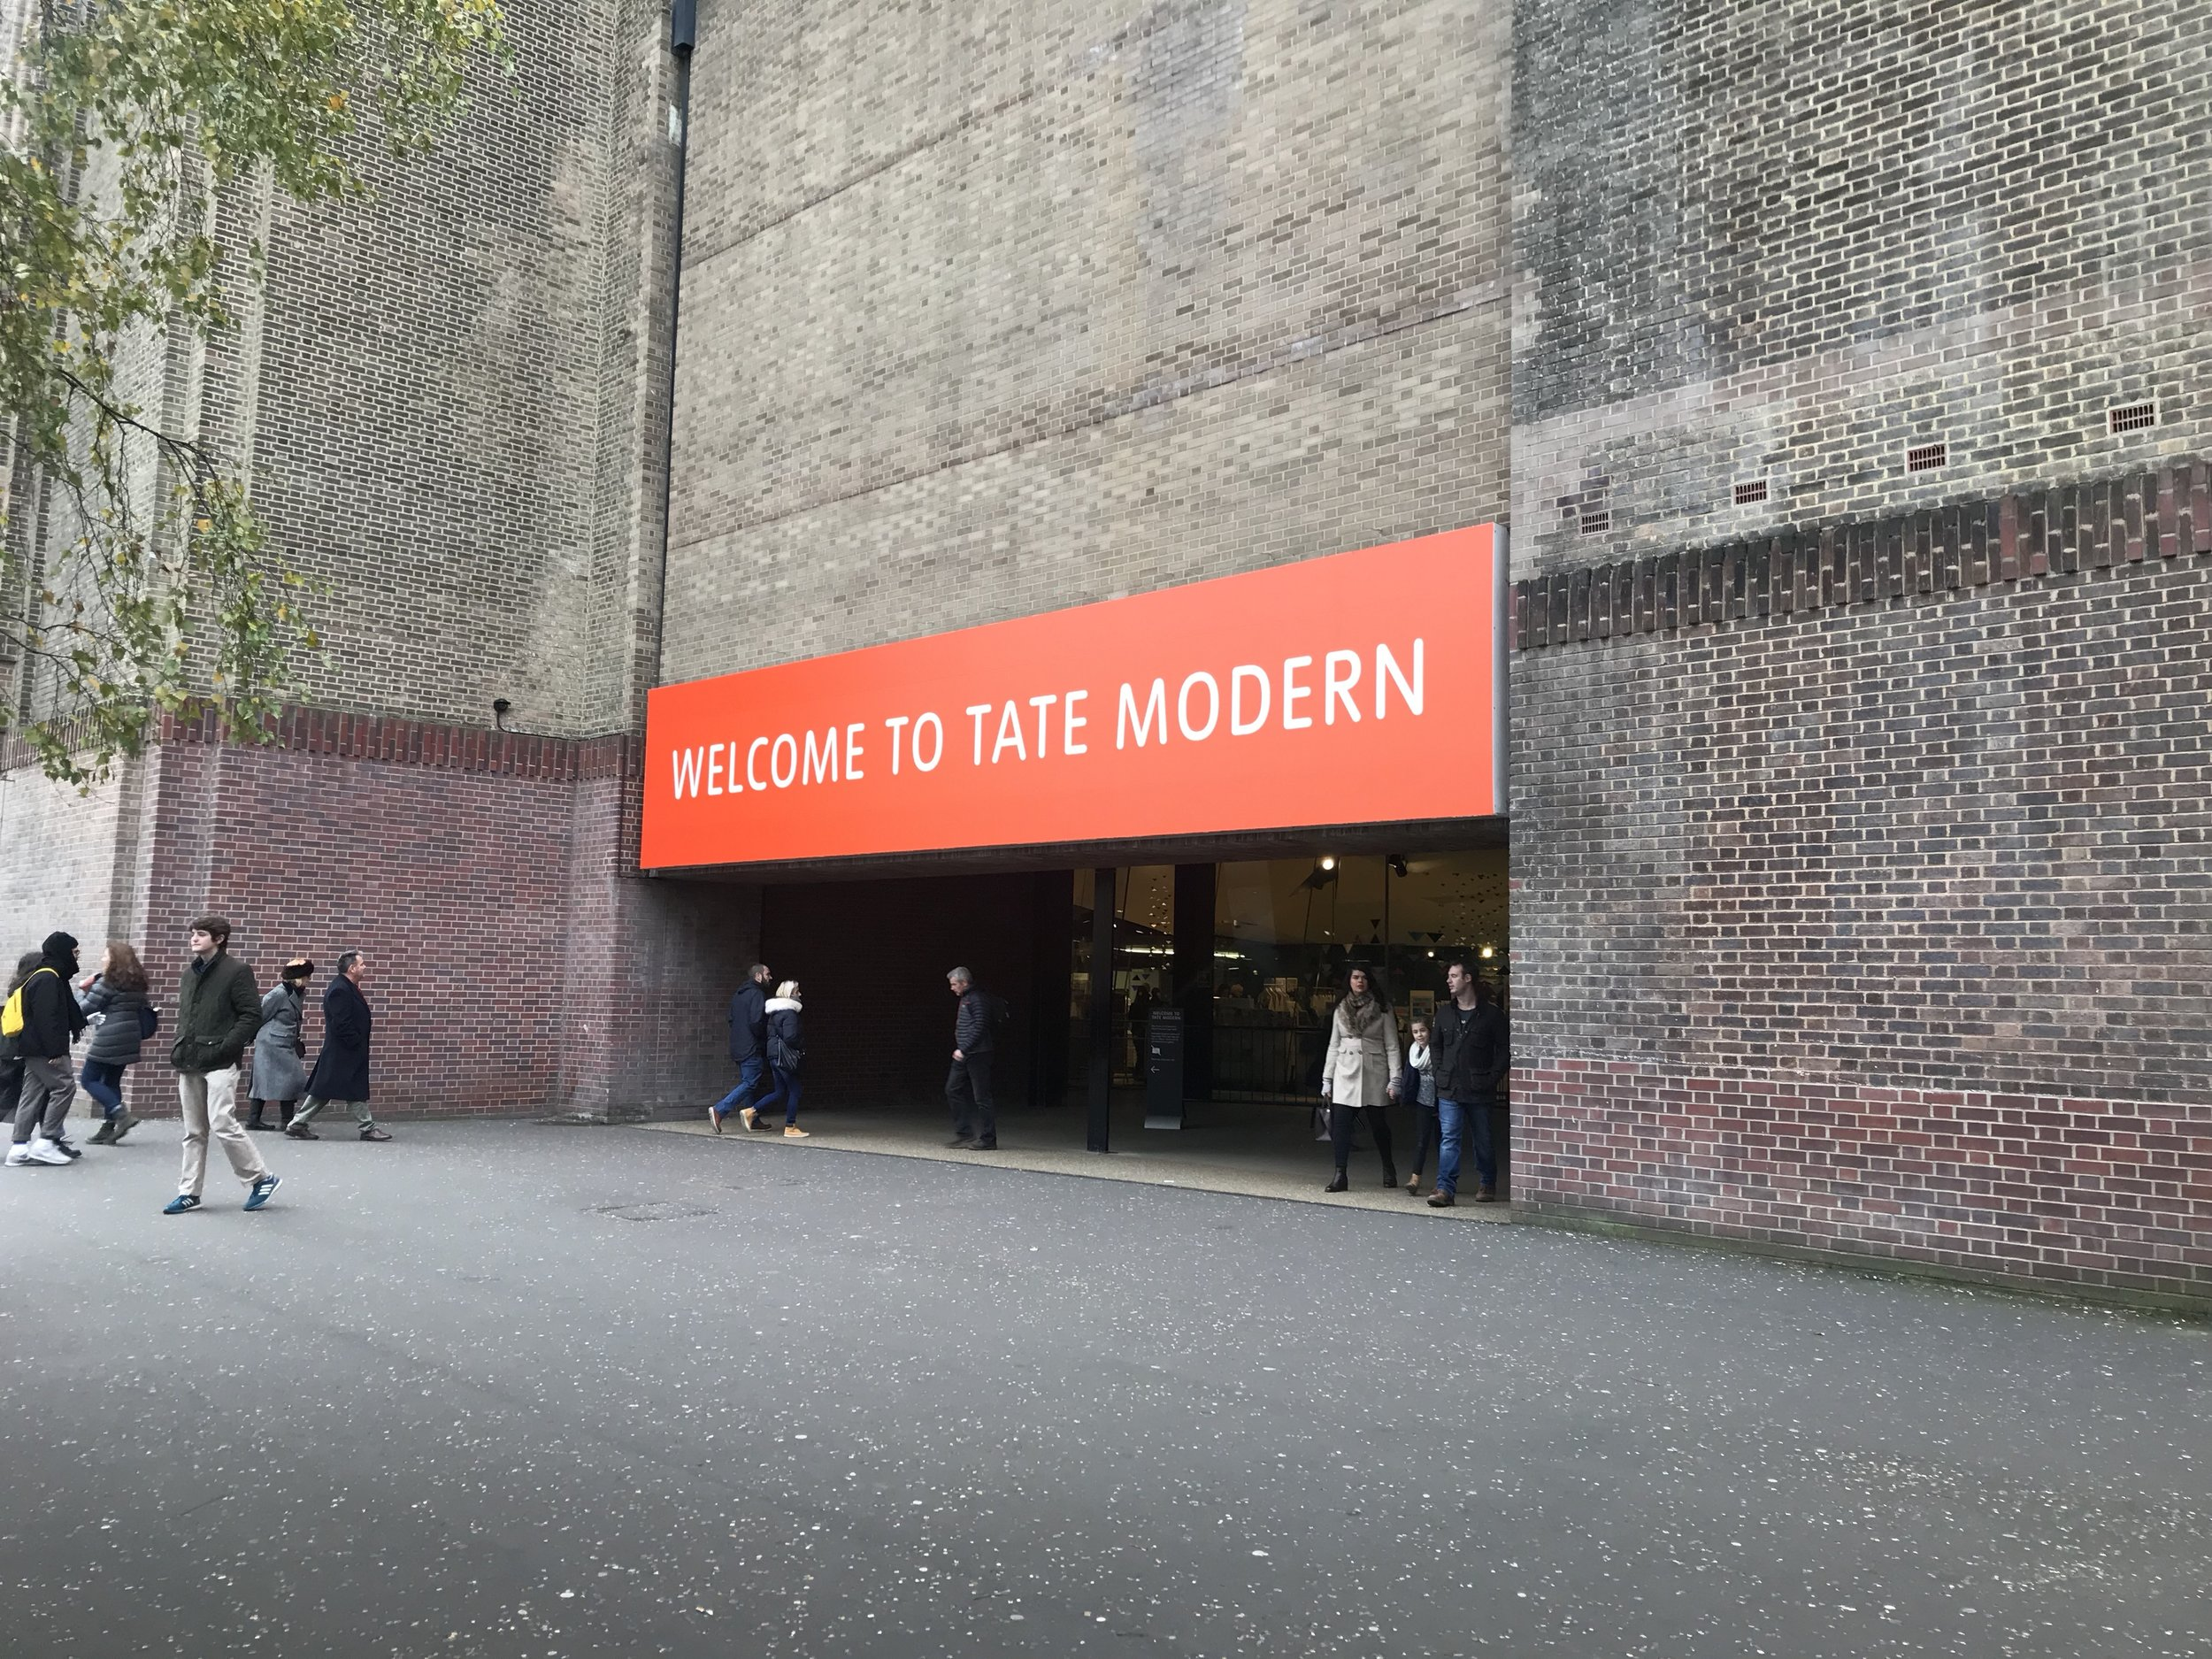 Second stop: a lovely visit to the Tate and a long browse in the gift shops. Museum gift shops are the best.